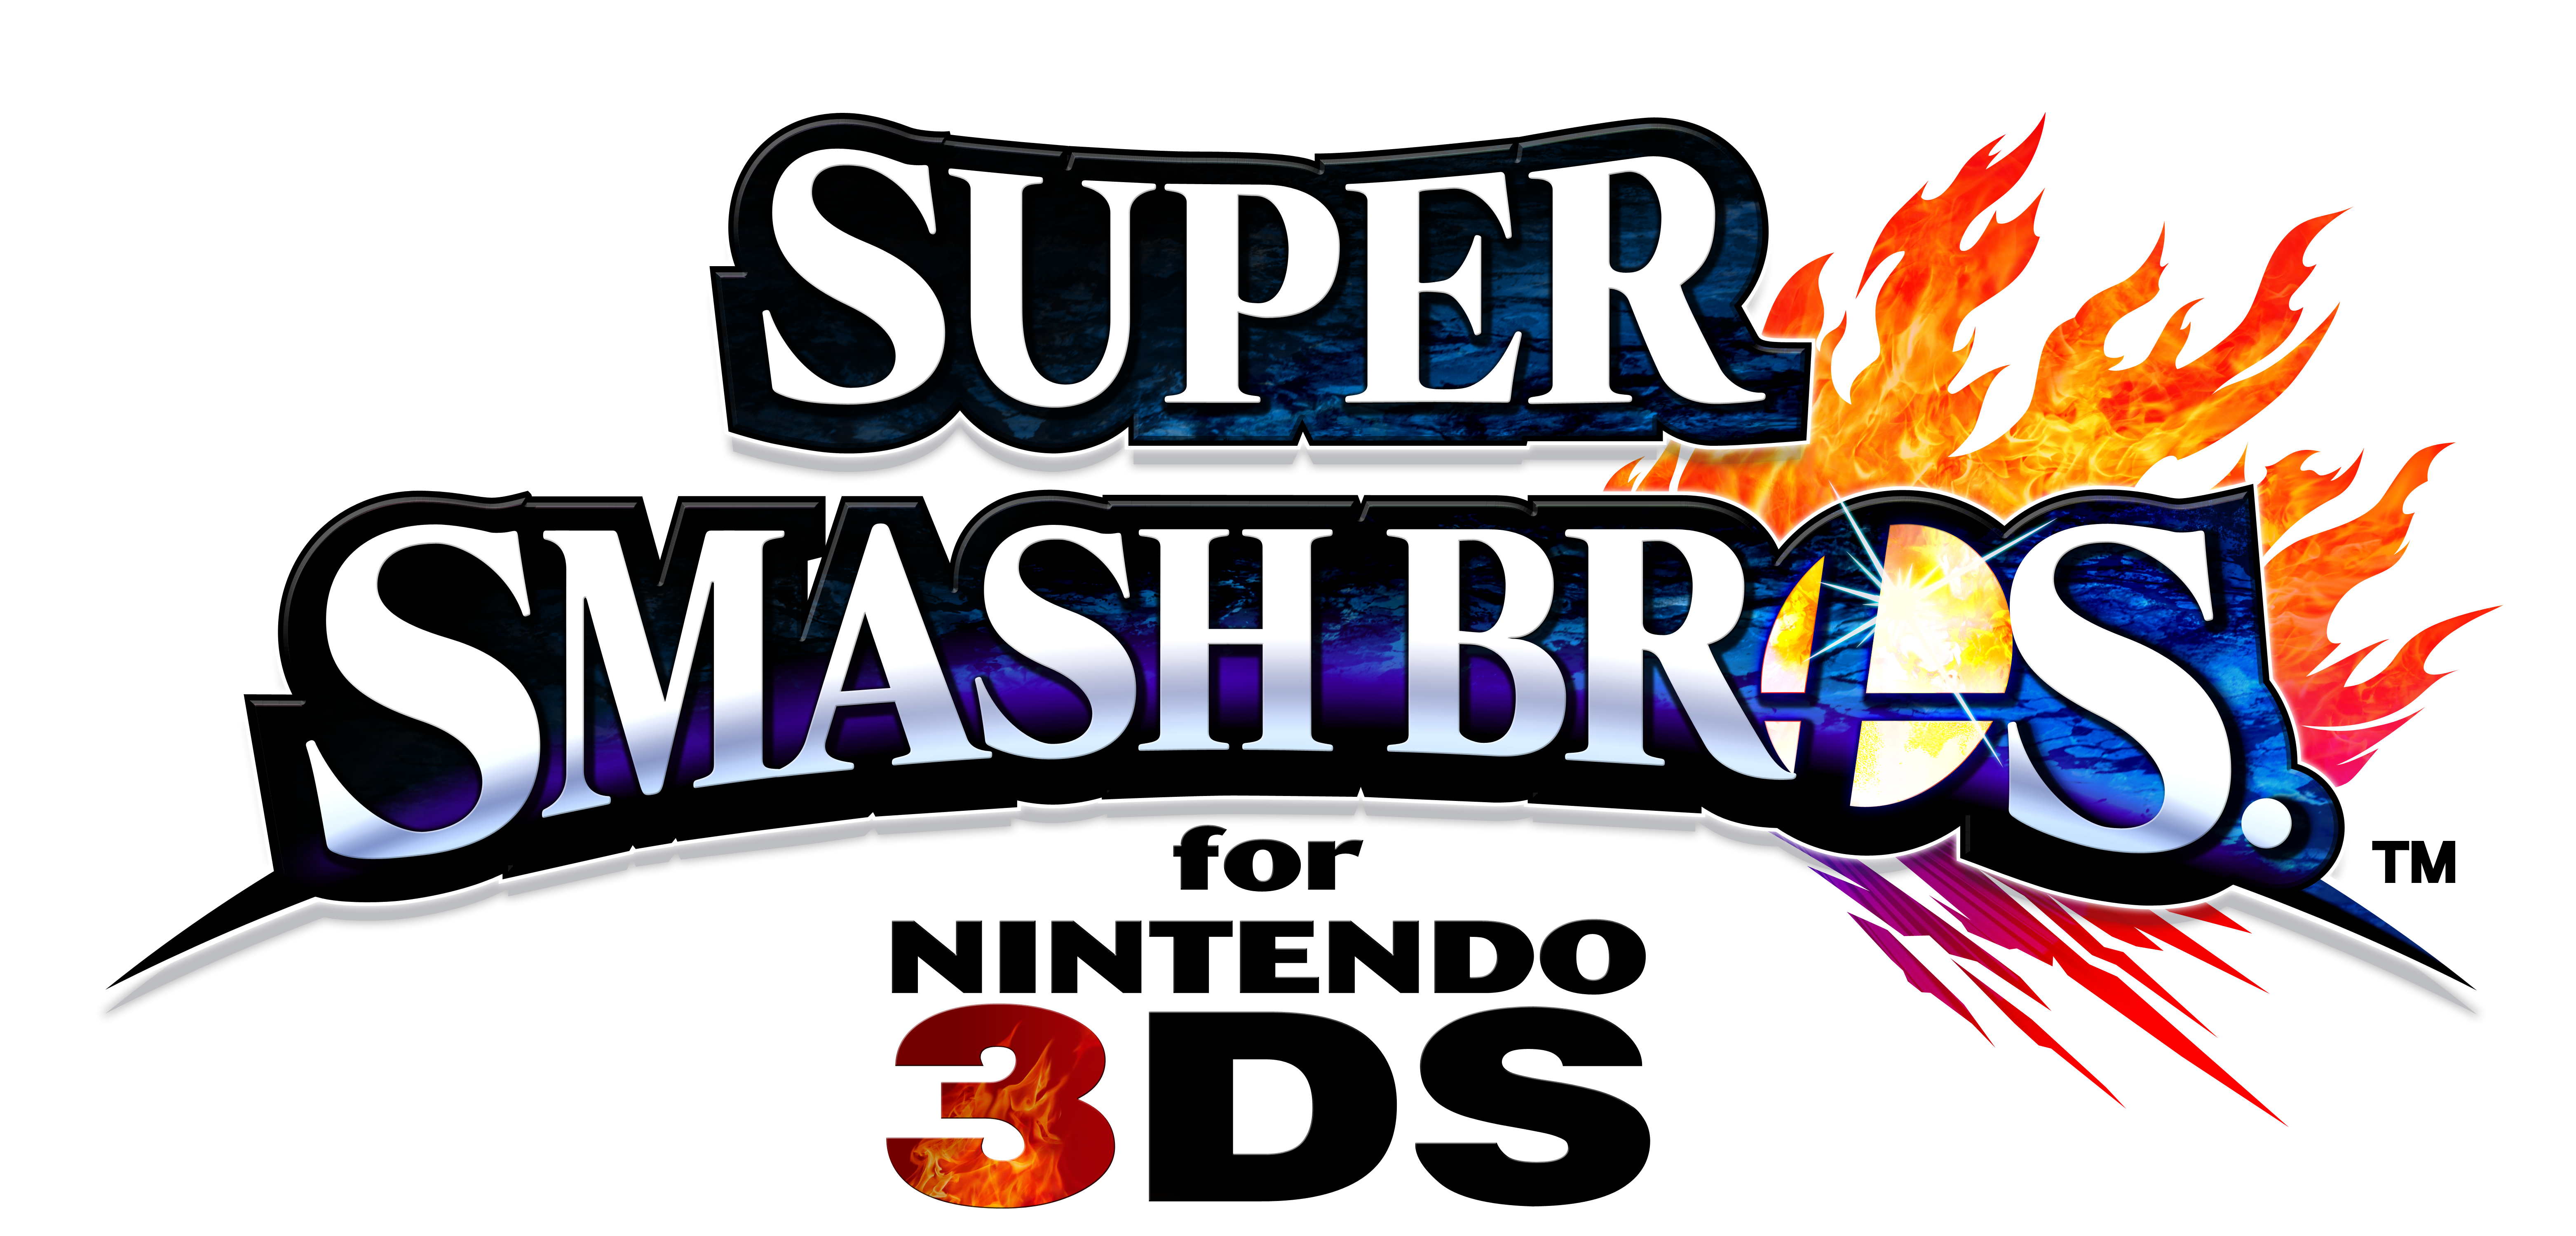 Smash comic book sound effect clipart free clip art library Super Smash Bros (Wii U / 3DS) Characters, Logos and supporting Artwork clip art library